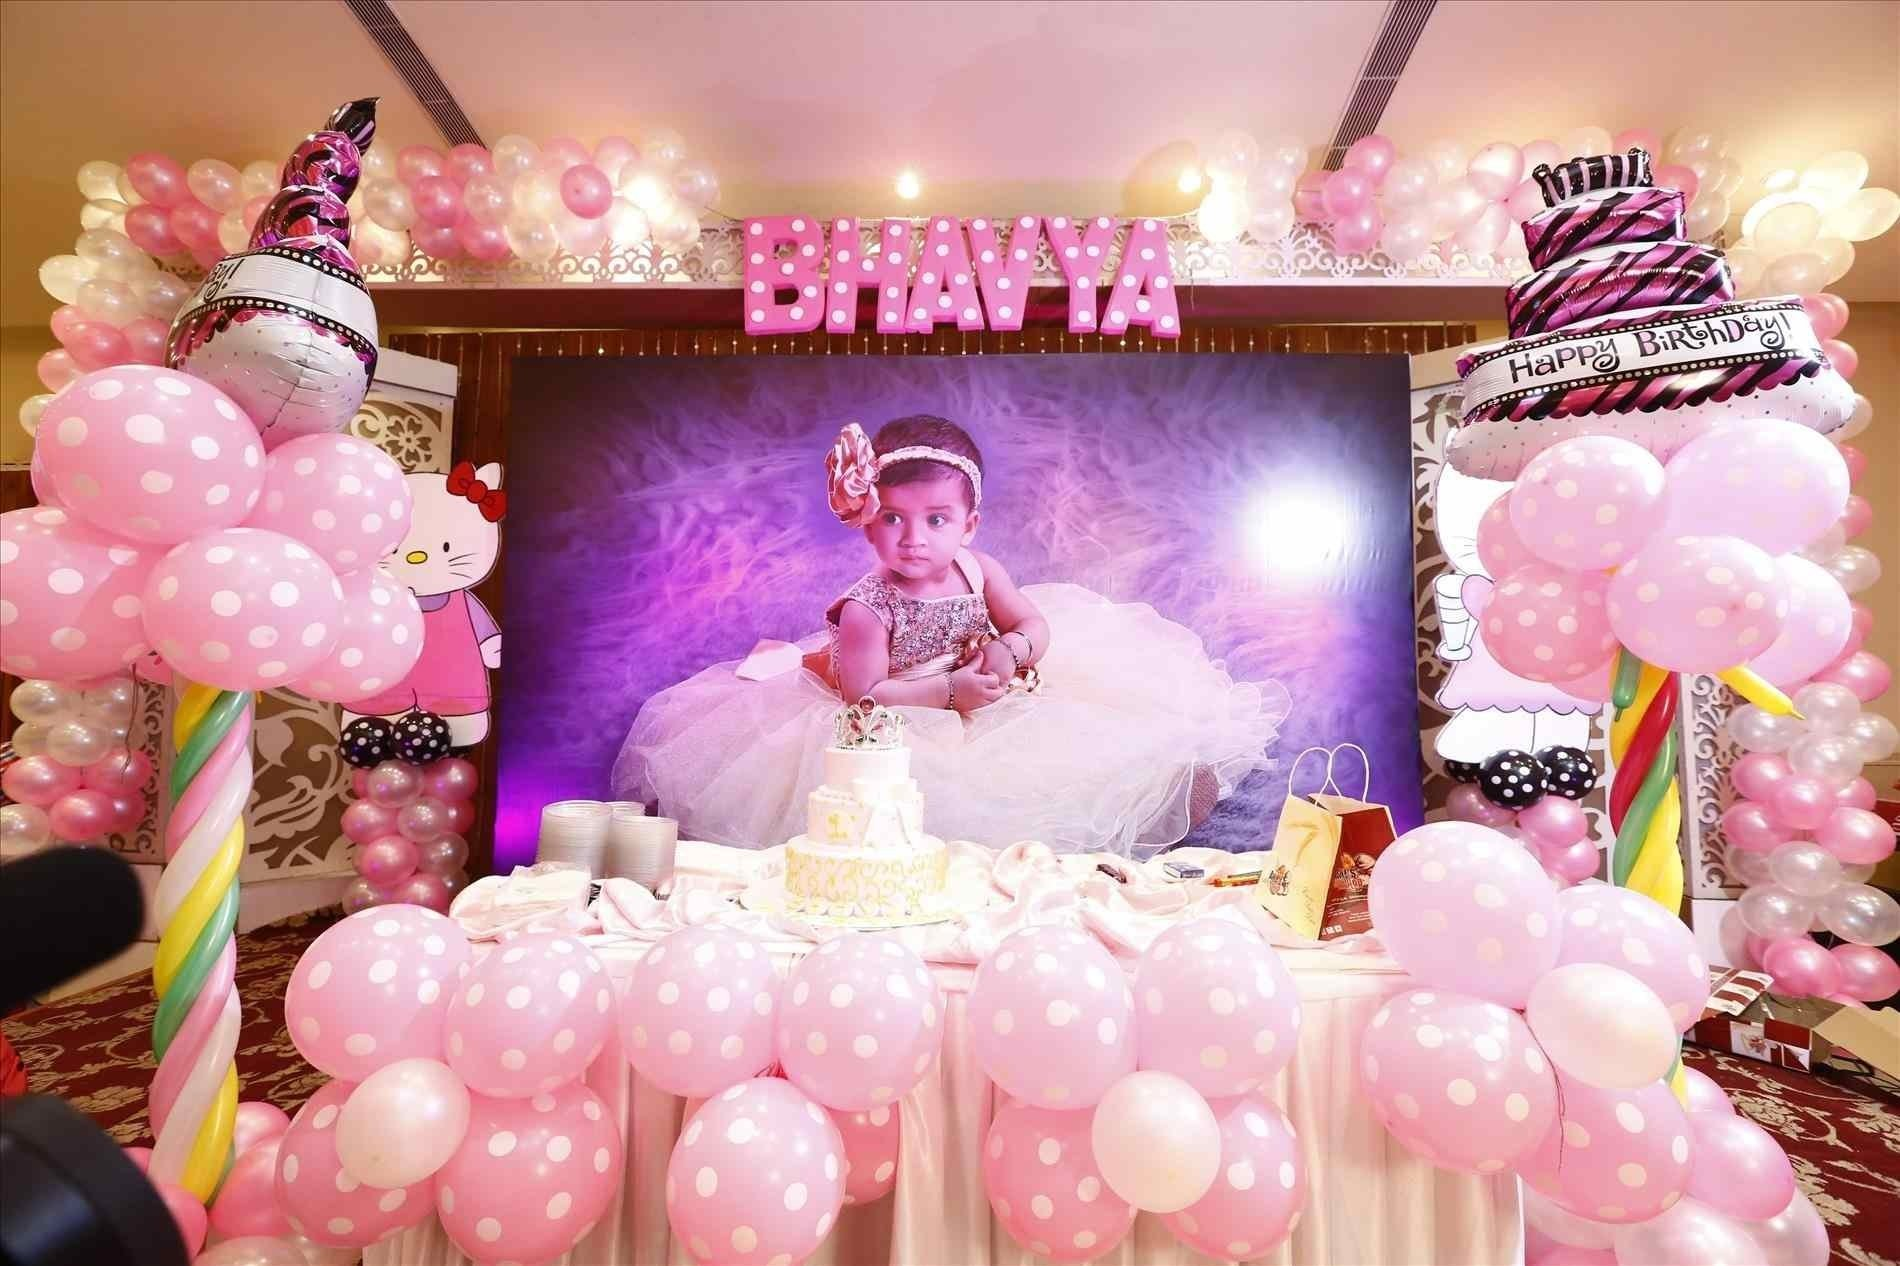 10 Attractive 1St Birthday Princess Party Ideas 1st birthday party ideas for girls princess design awesome theme 2021